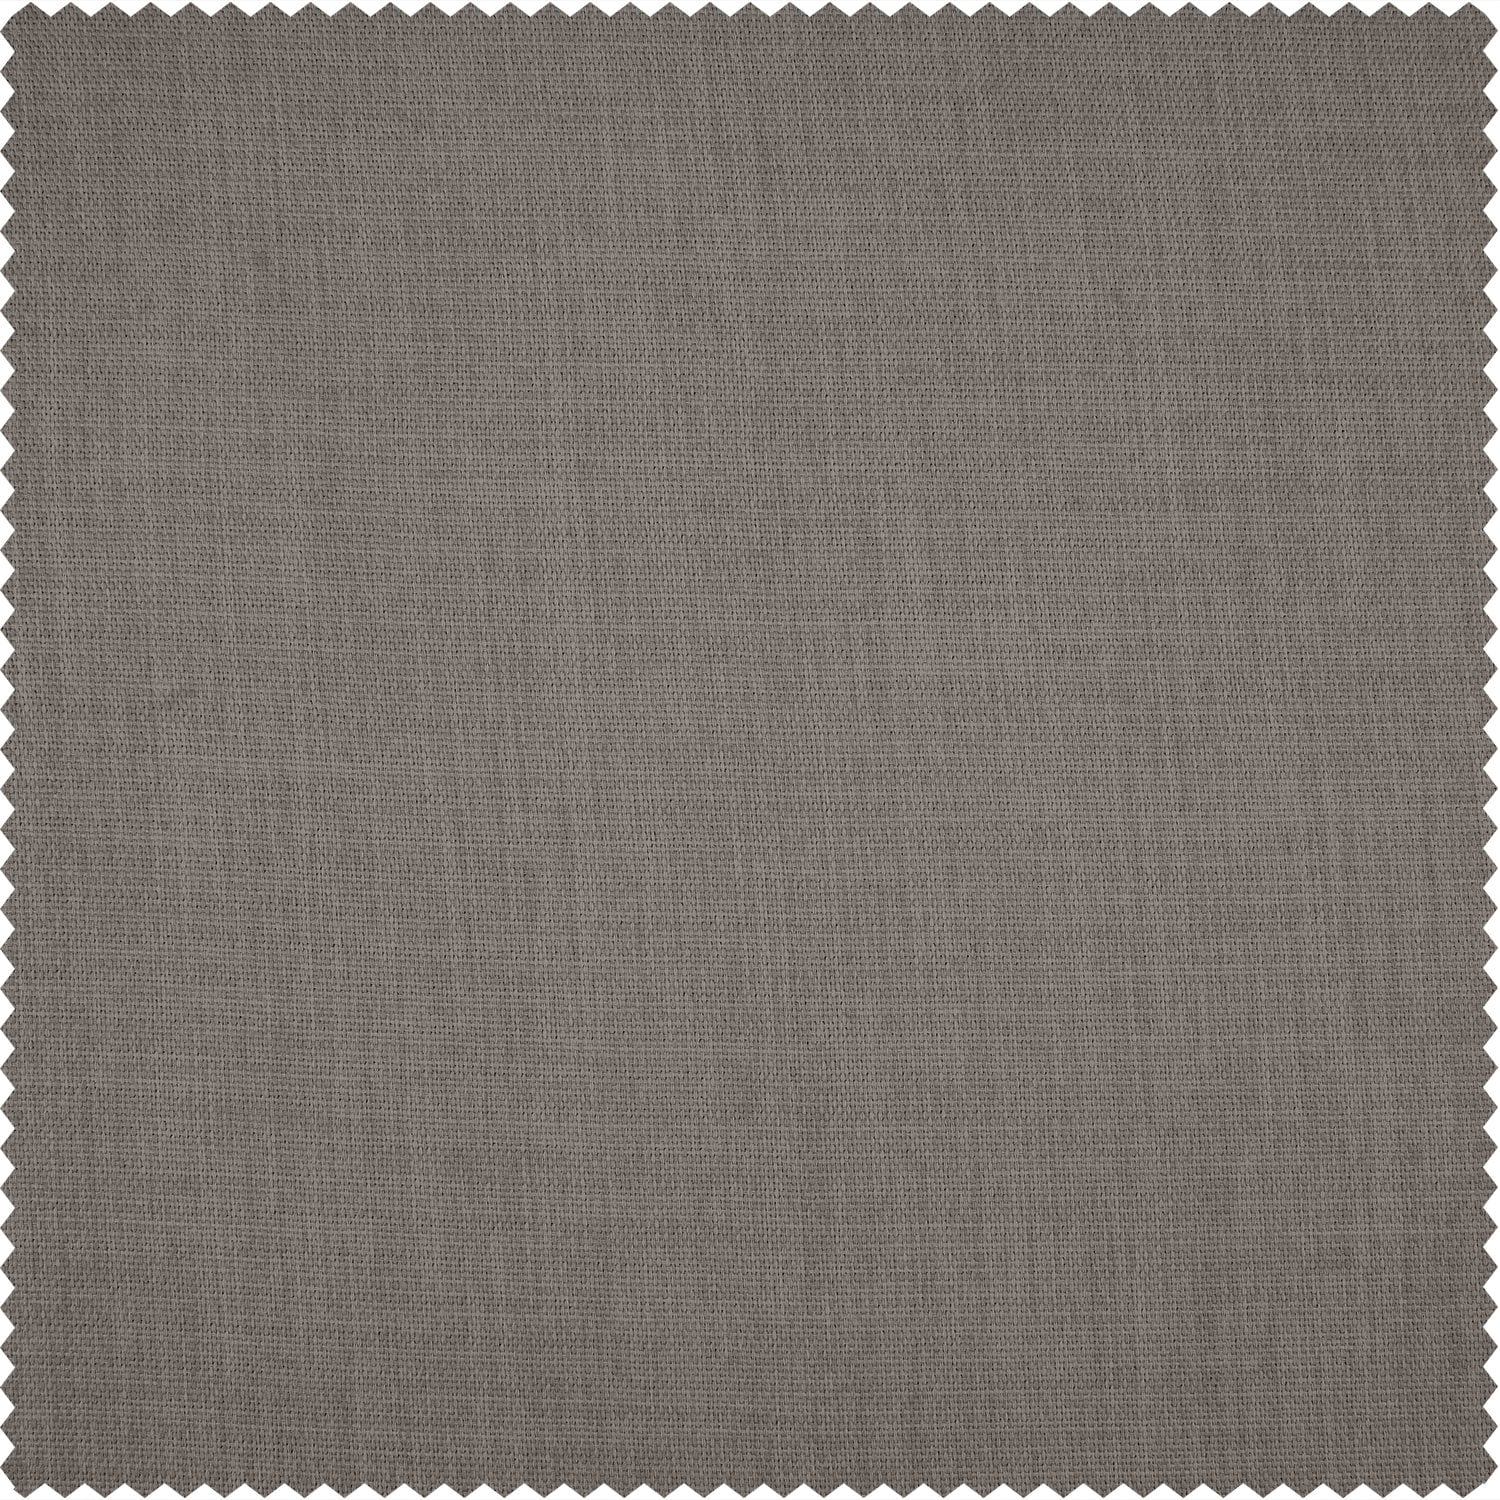 Warm Stone Grey Monochromatic Faux Linen Room Darkening Swatch